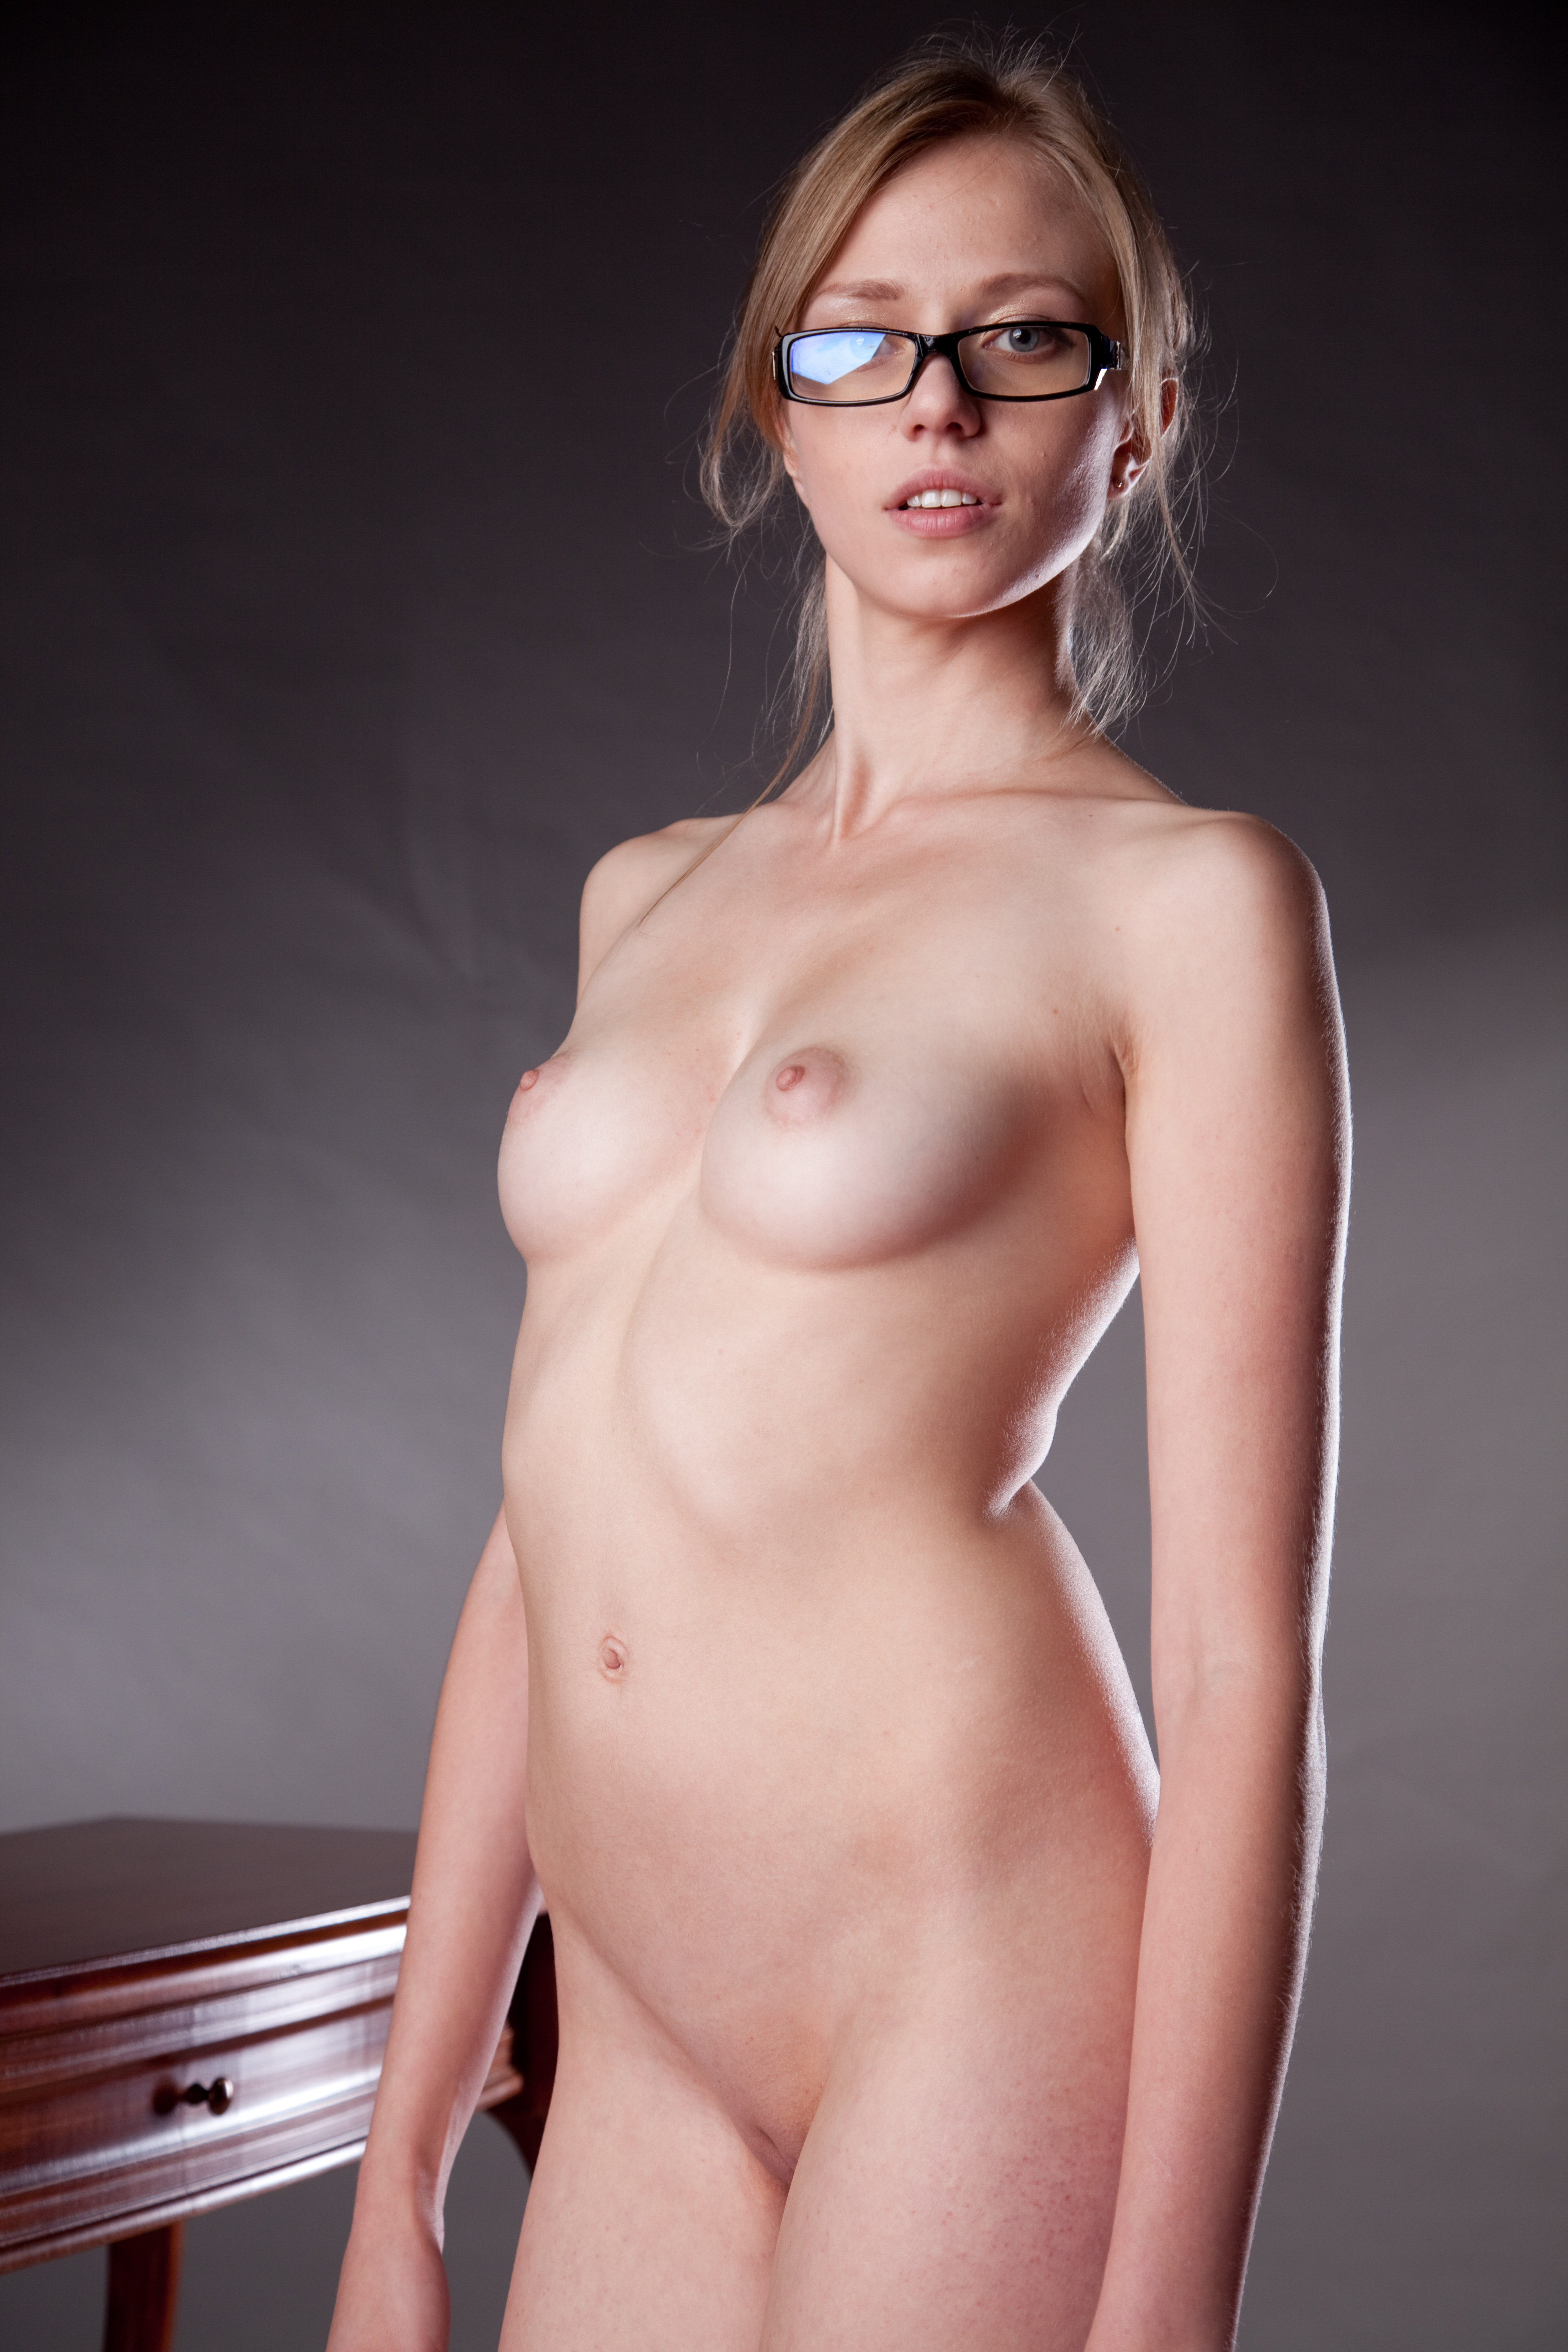 nude-girls-in-glasses-boobs-mix-vol2-88